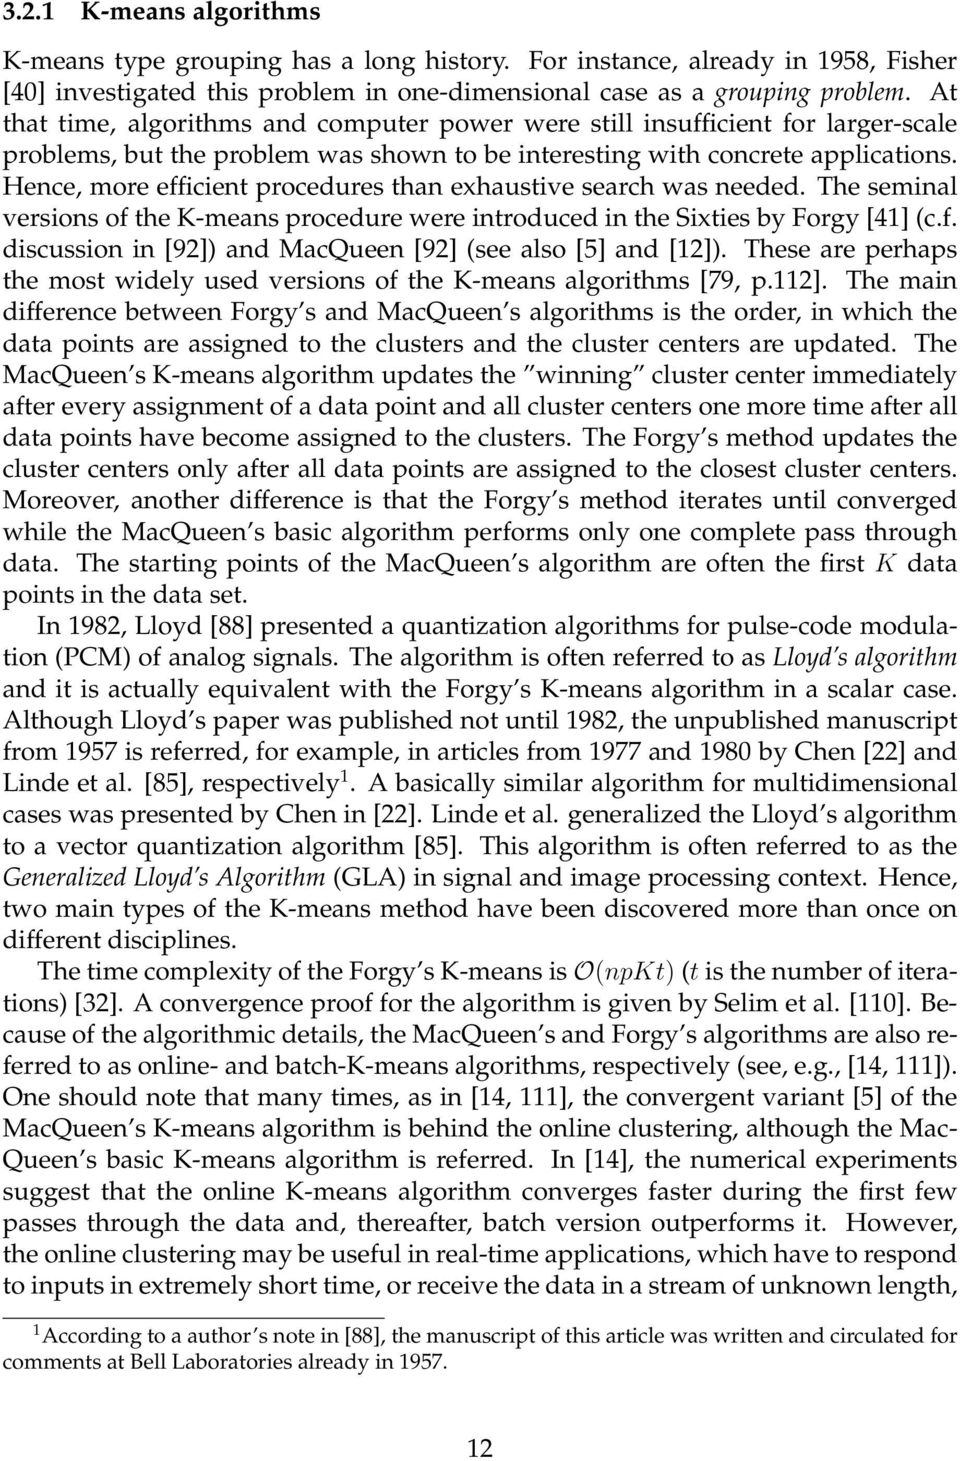 Hence, more efficient procedures than exhaustive search was needed. The seminal versions of the K-means procedure were introduced in the Sixties by Forgy [41] (c.f. discussion in [92]) and MacQueen [92] (see also [5] and [12]).